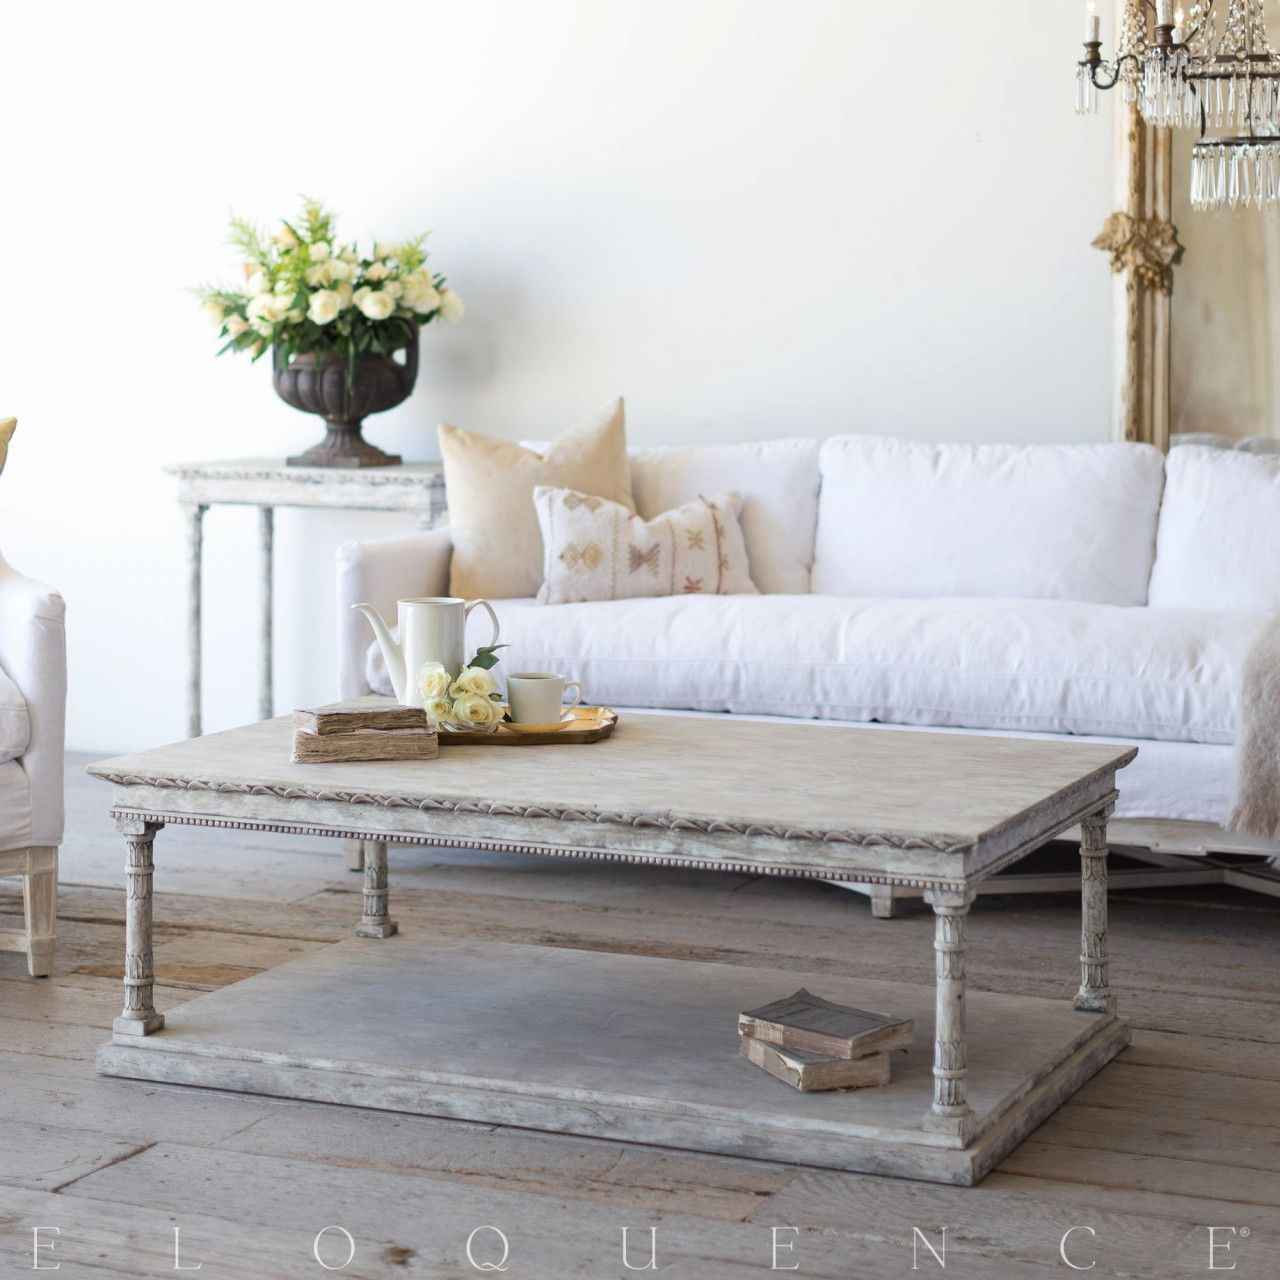 77 lovely small coffee tables for small spaces 2020